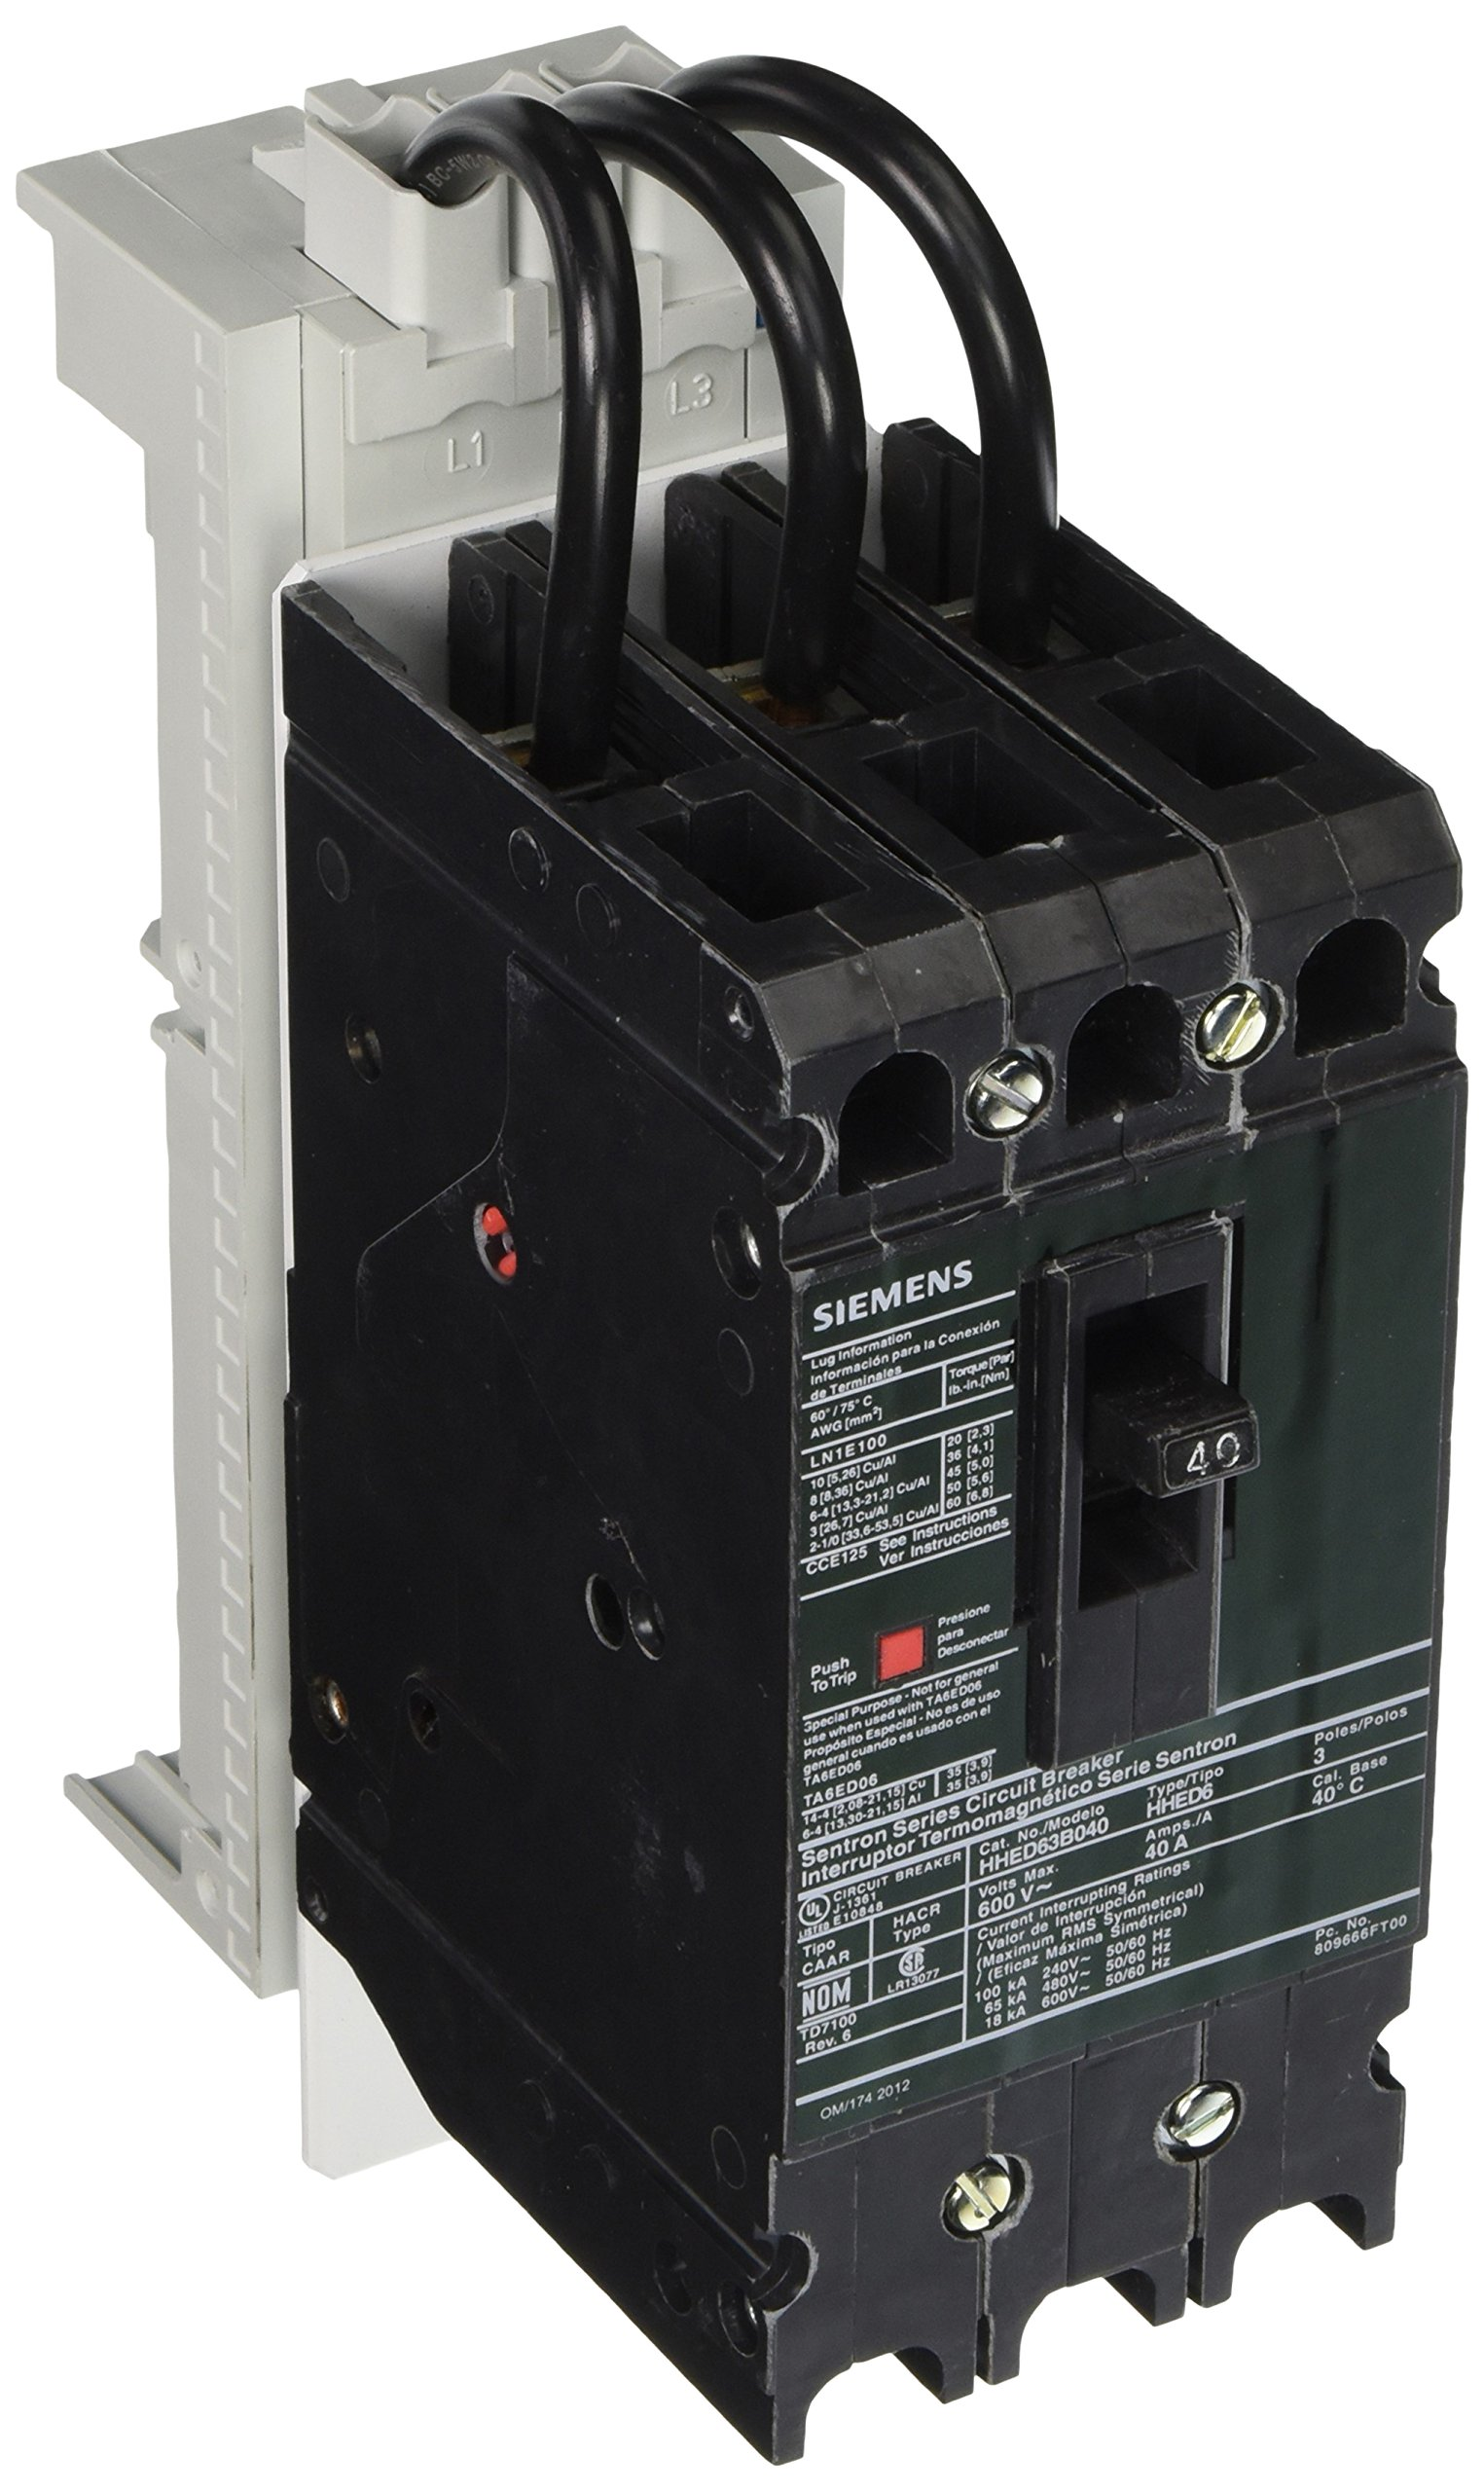 Siemens FBCB040H Fast Bus Busbar Circuit Breaker, High Interrupting, Feeder 3 Pole, Snap On Adapter Shoes, HHED Breaker Frame, 40A UL Current Rating, 65kA UL Short Circuit Current Rating On 480V